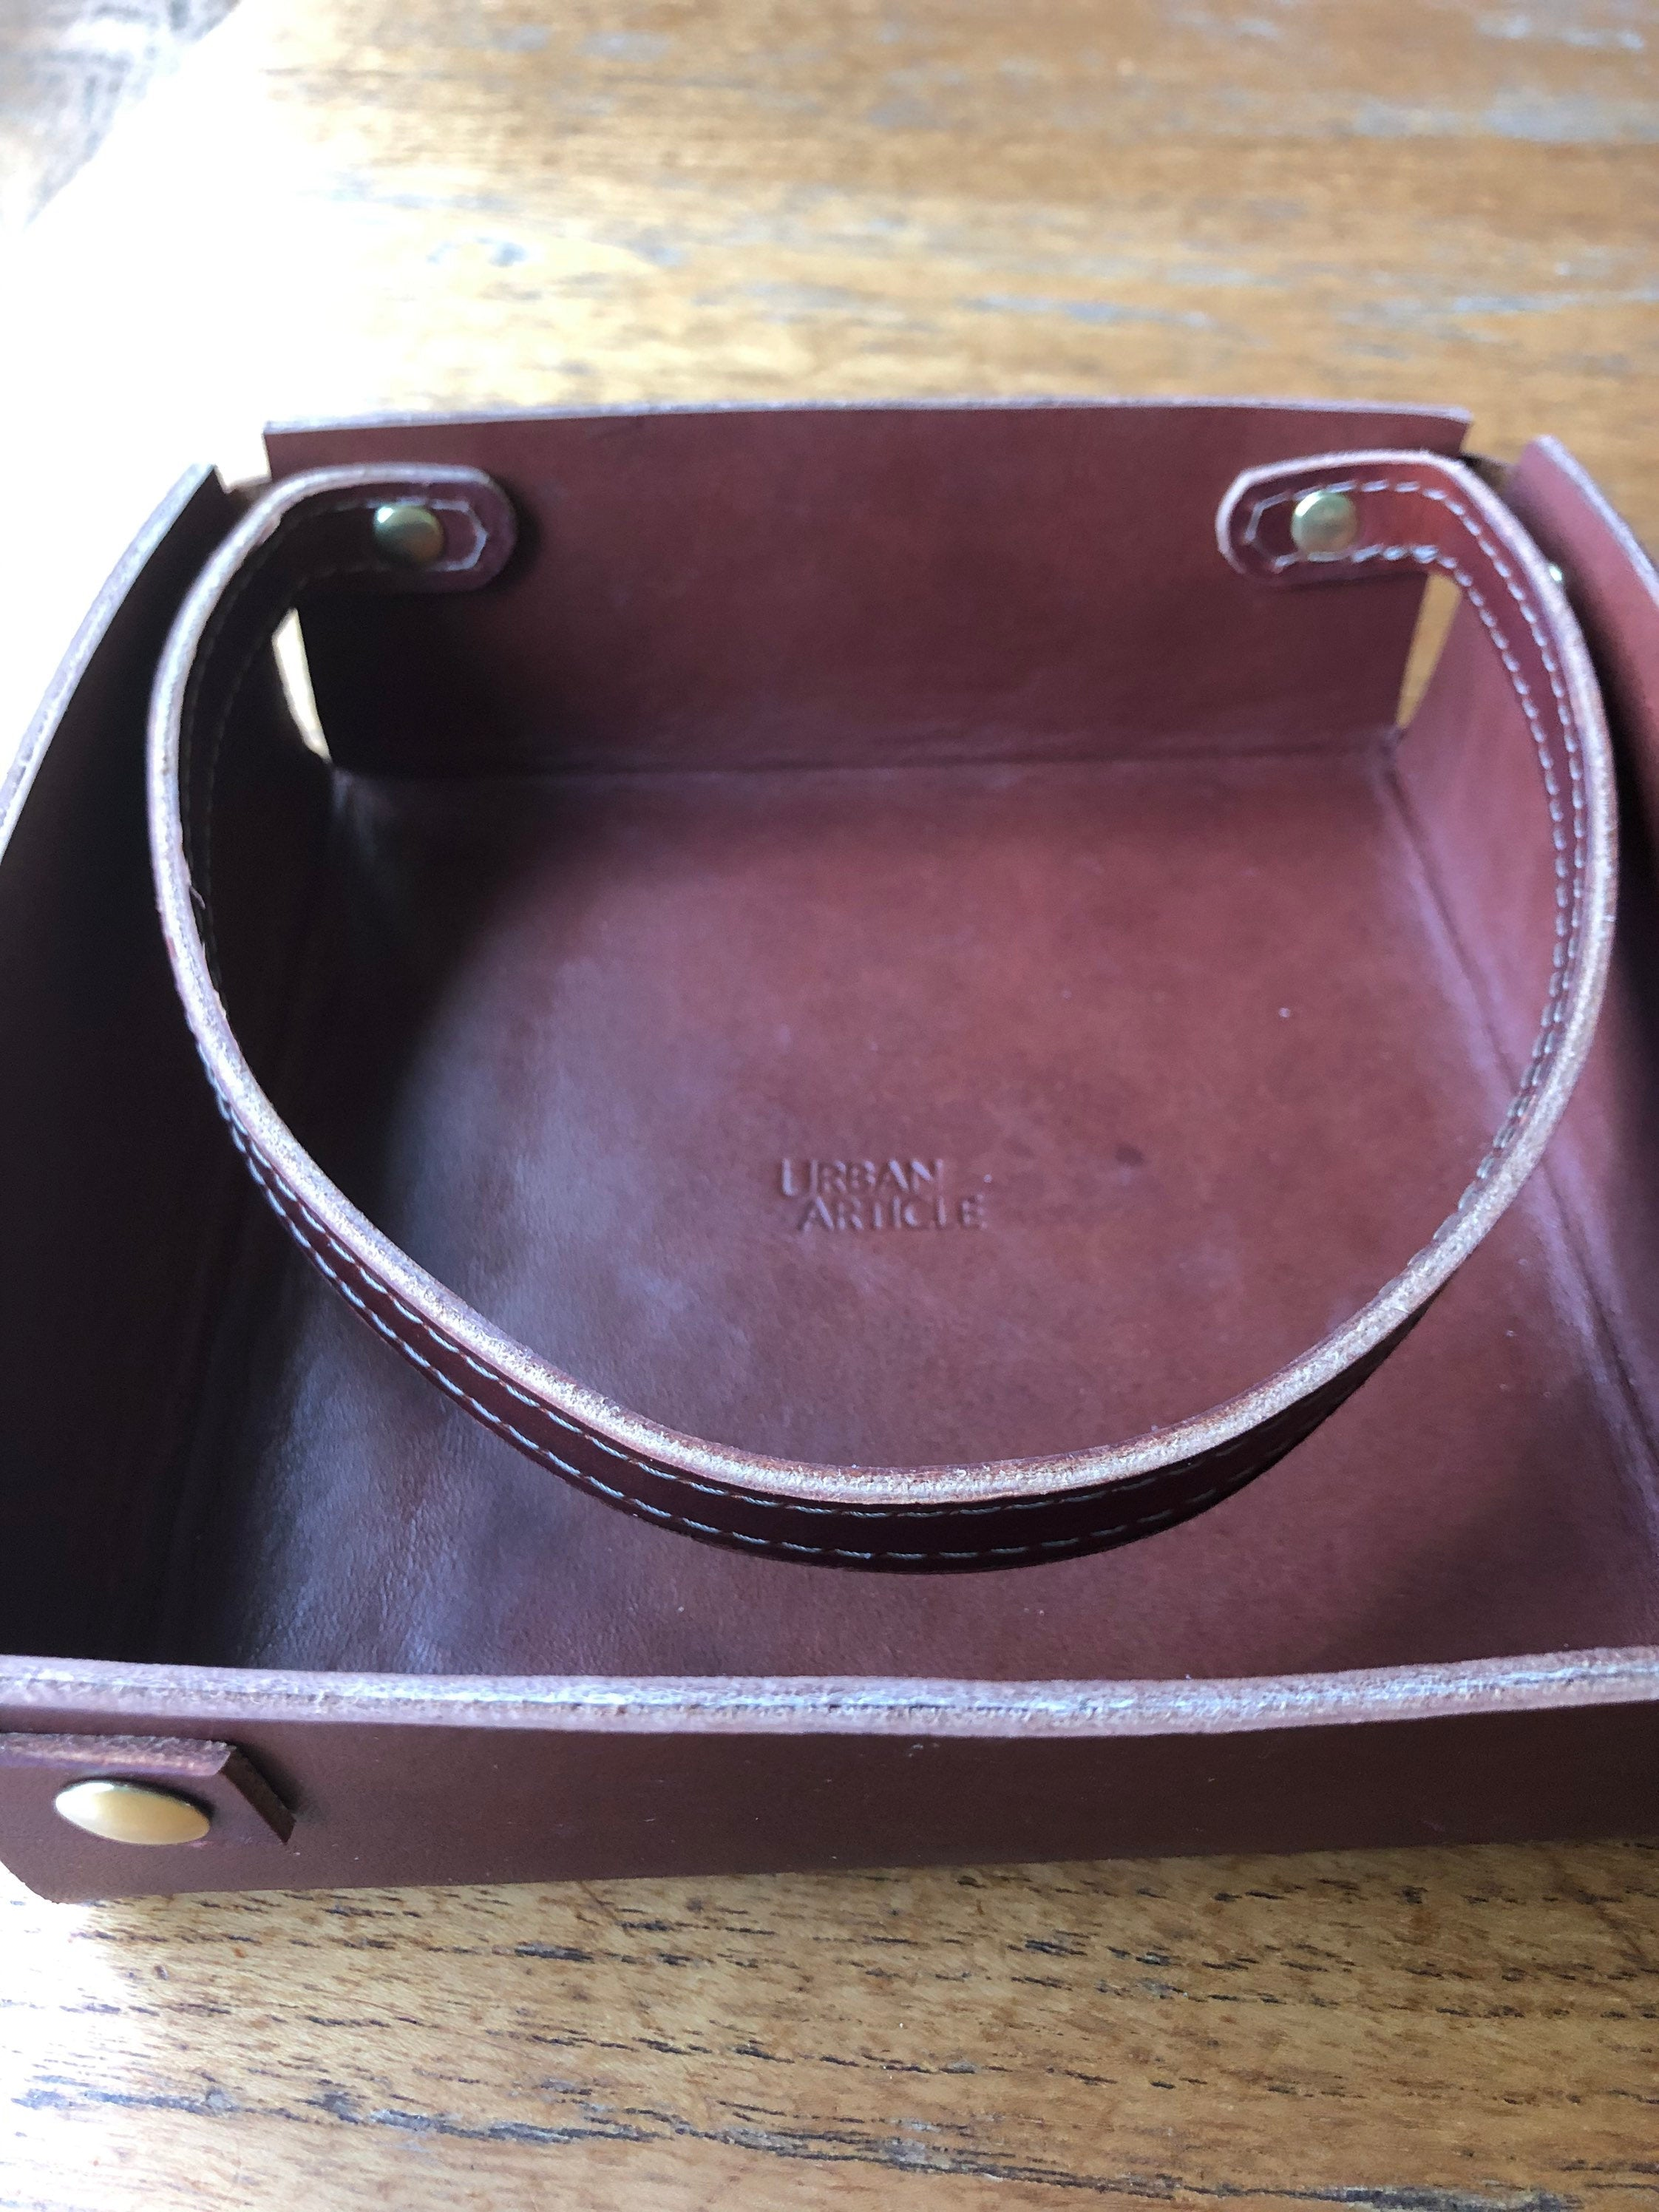 Brown leather napkin holder with strap keeper rests on wooden table